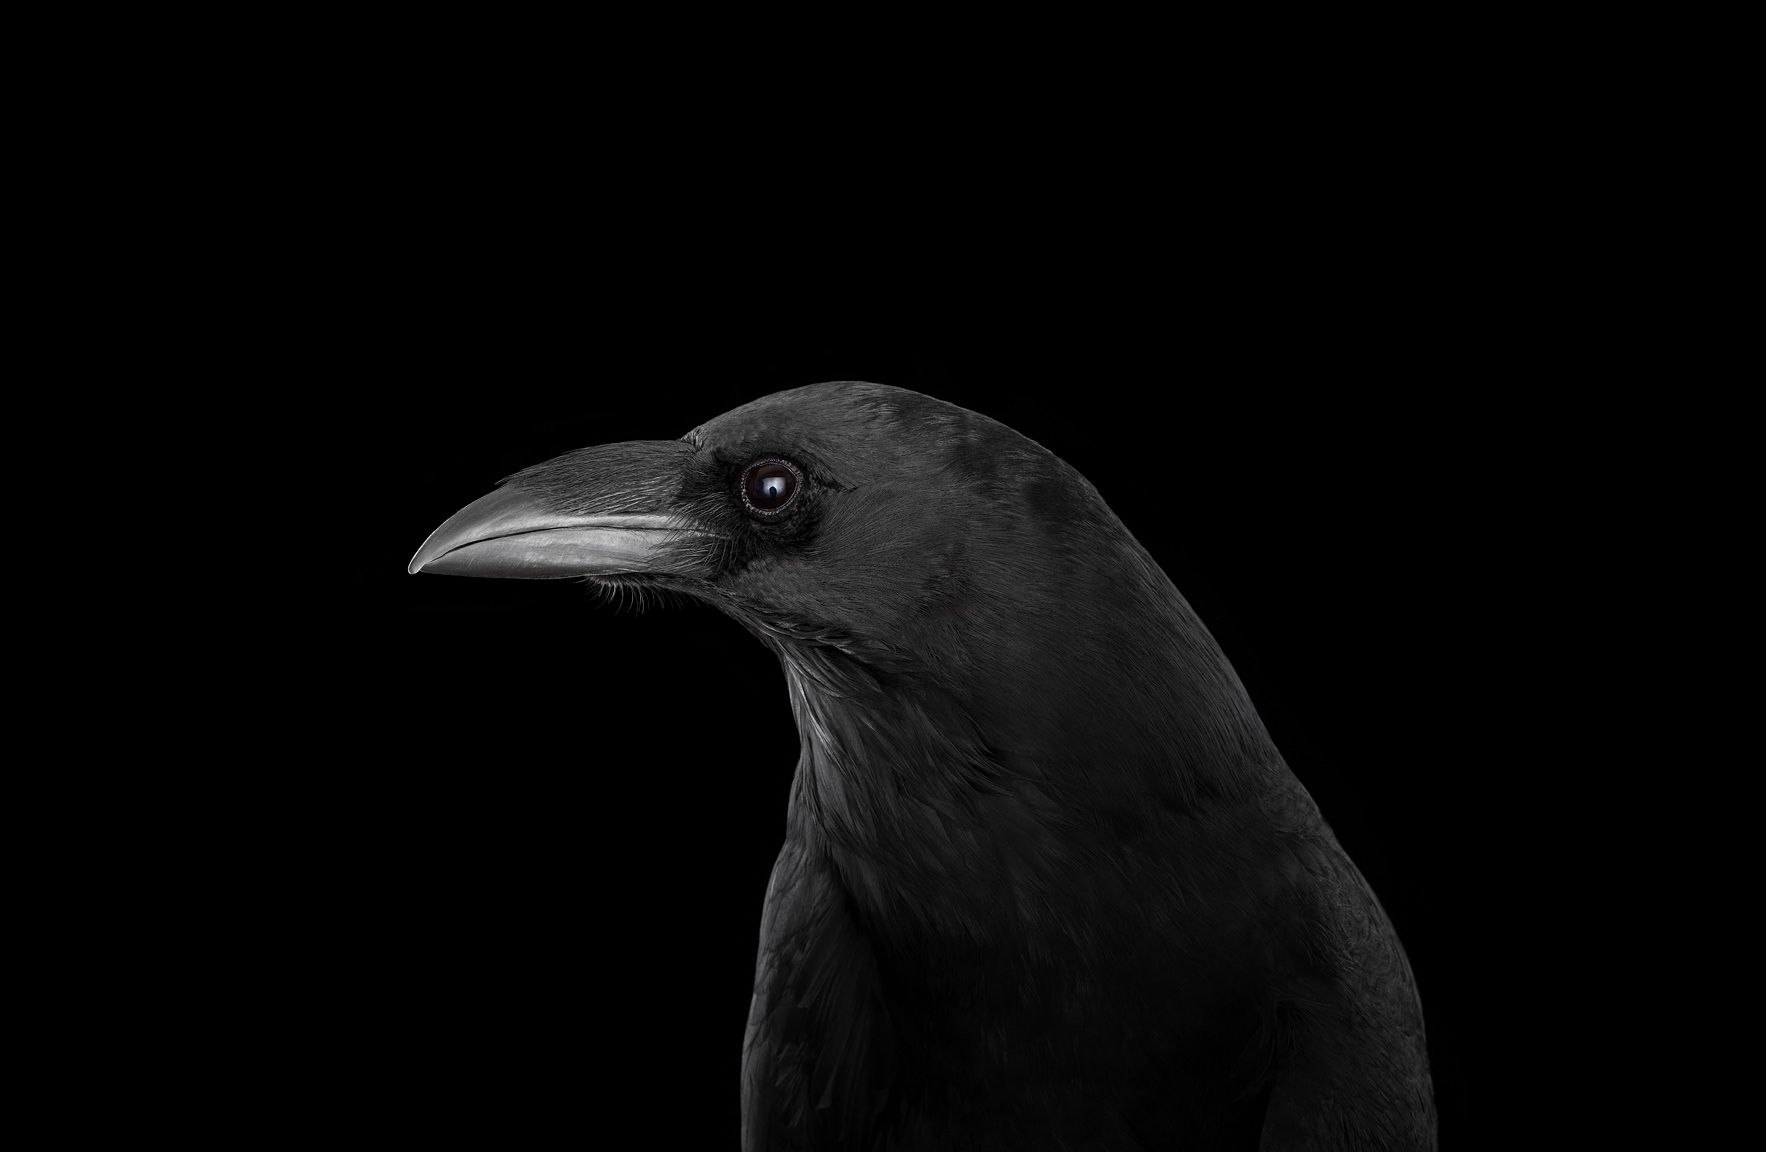 Raven #4, Albuquerque, New Mexico, USA, 2018,Brad Wilson,Photographie contemporaine